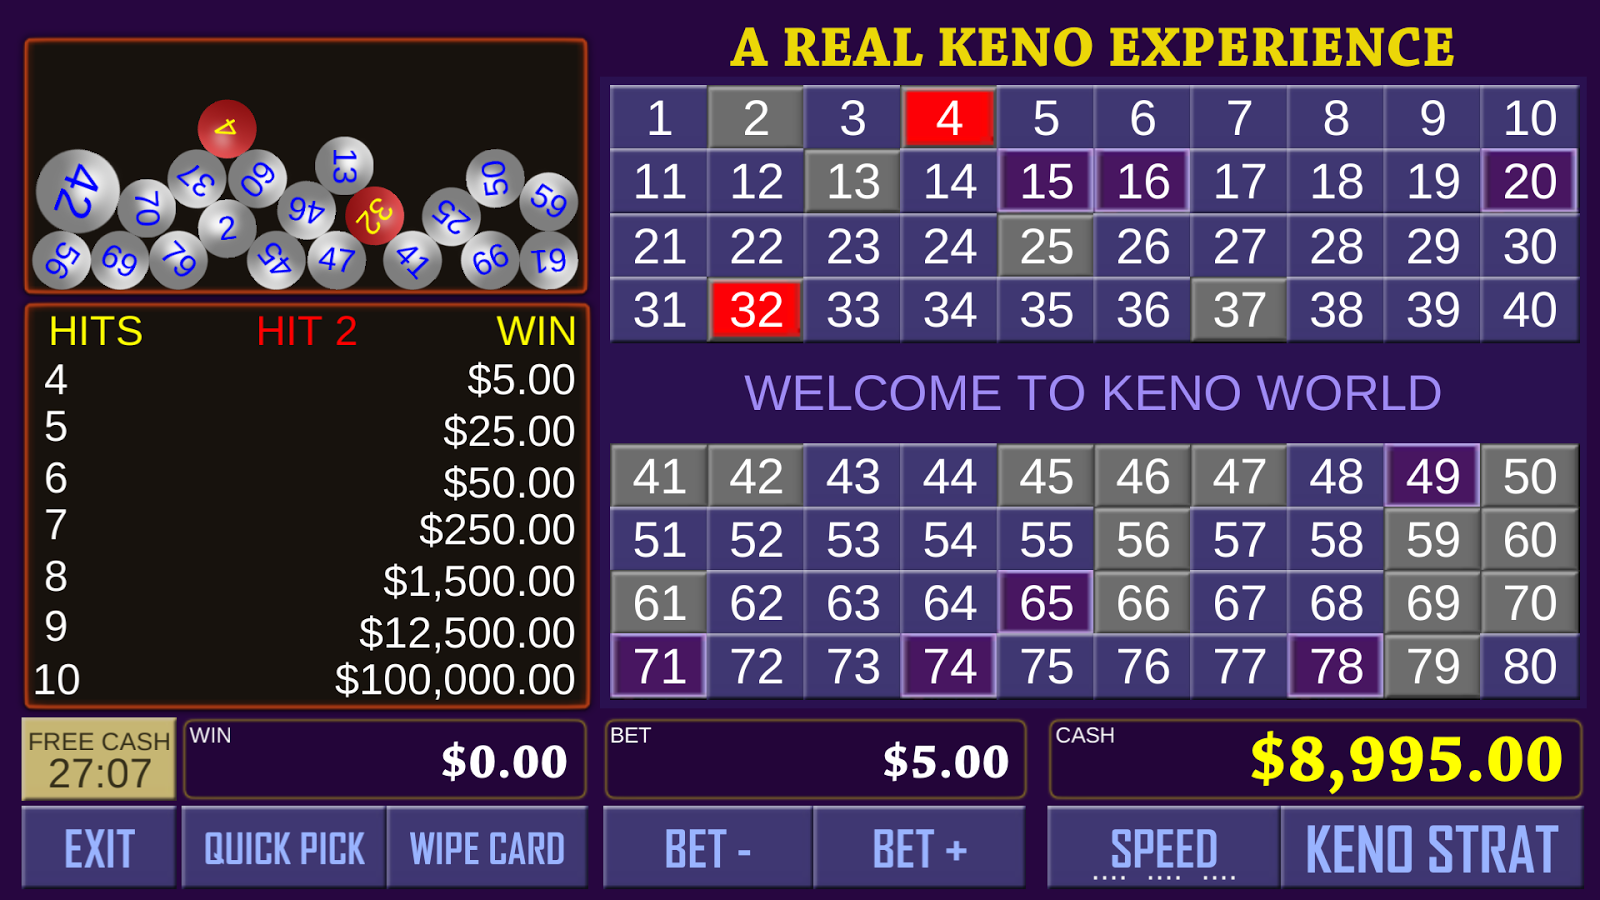 Join Keno Arcade Game Online at Casino.com South Africa